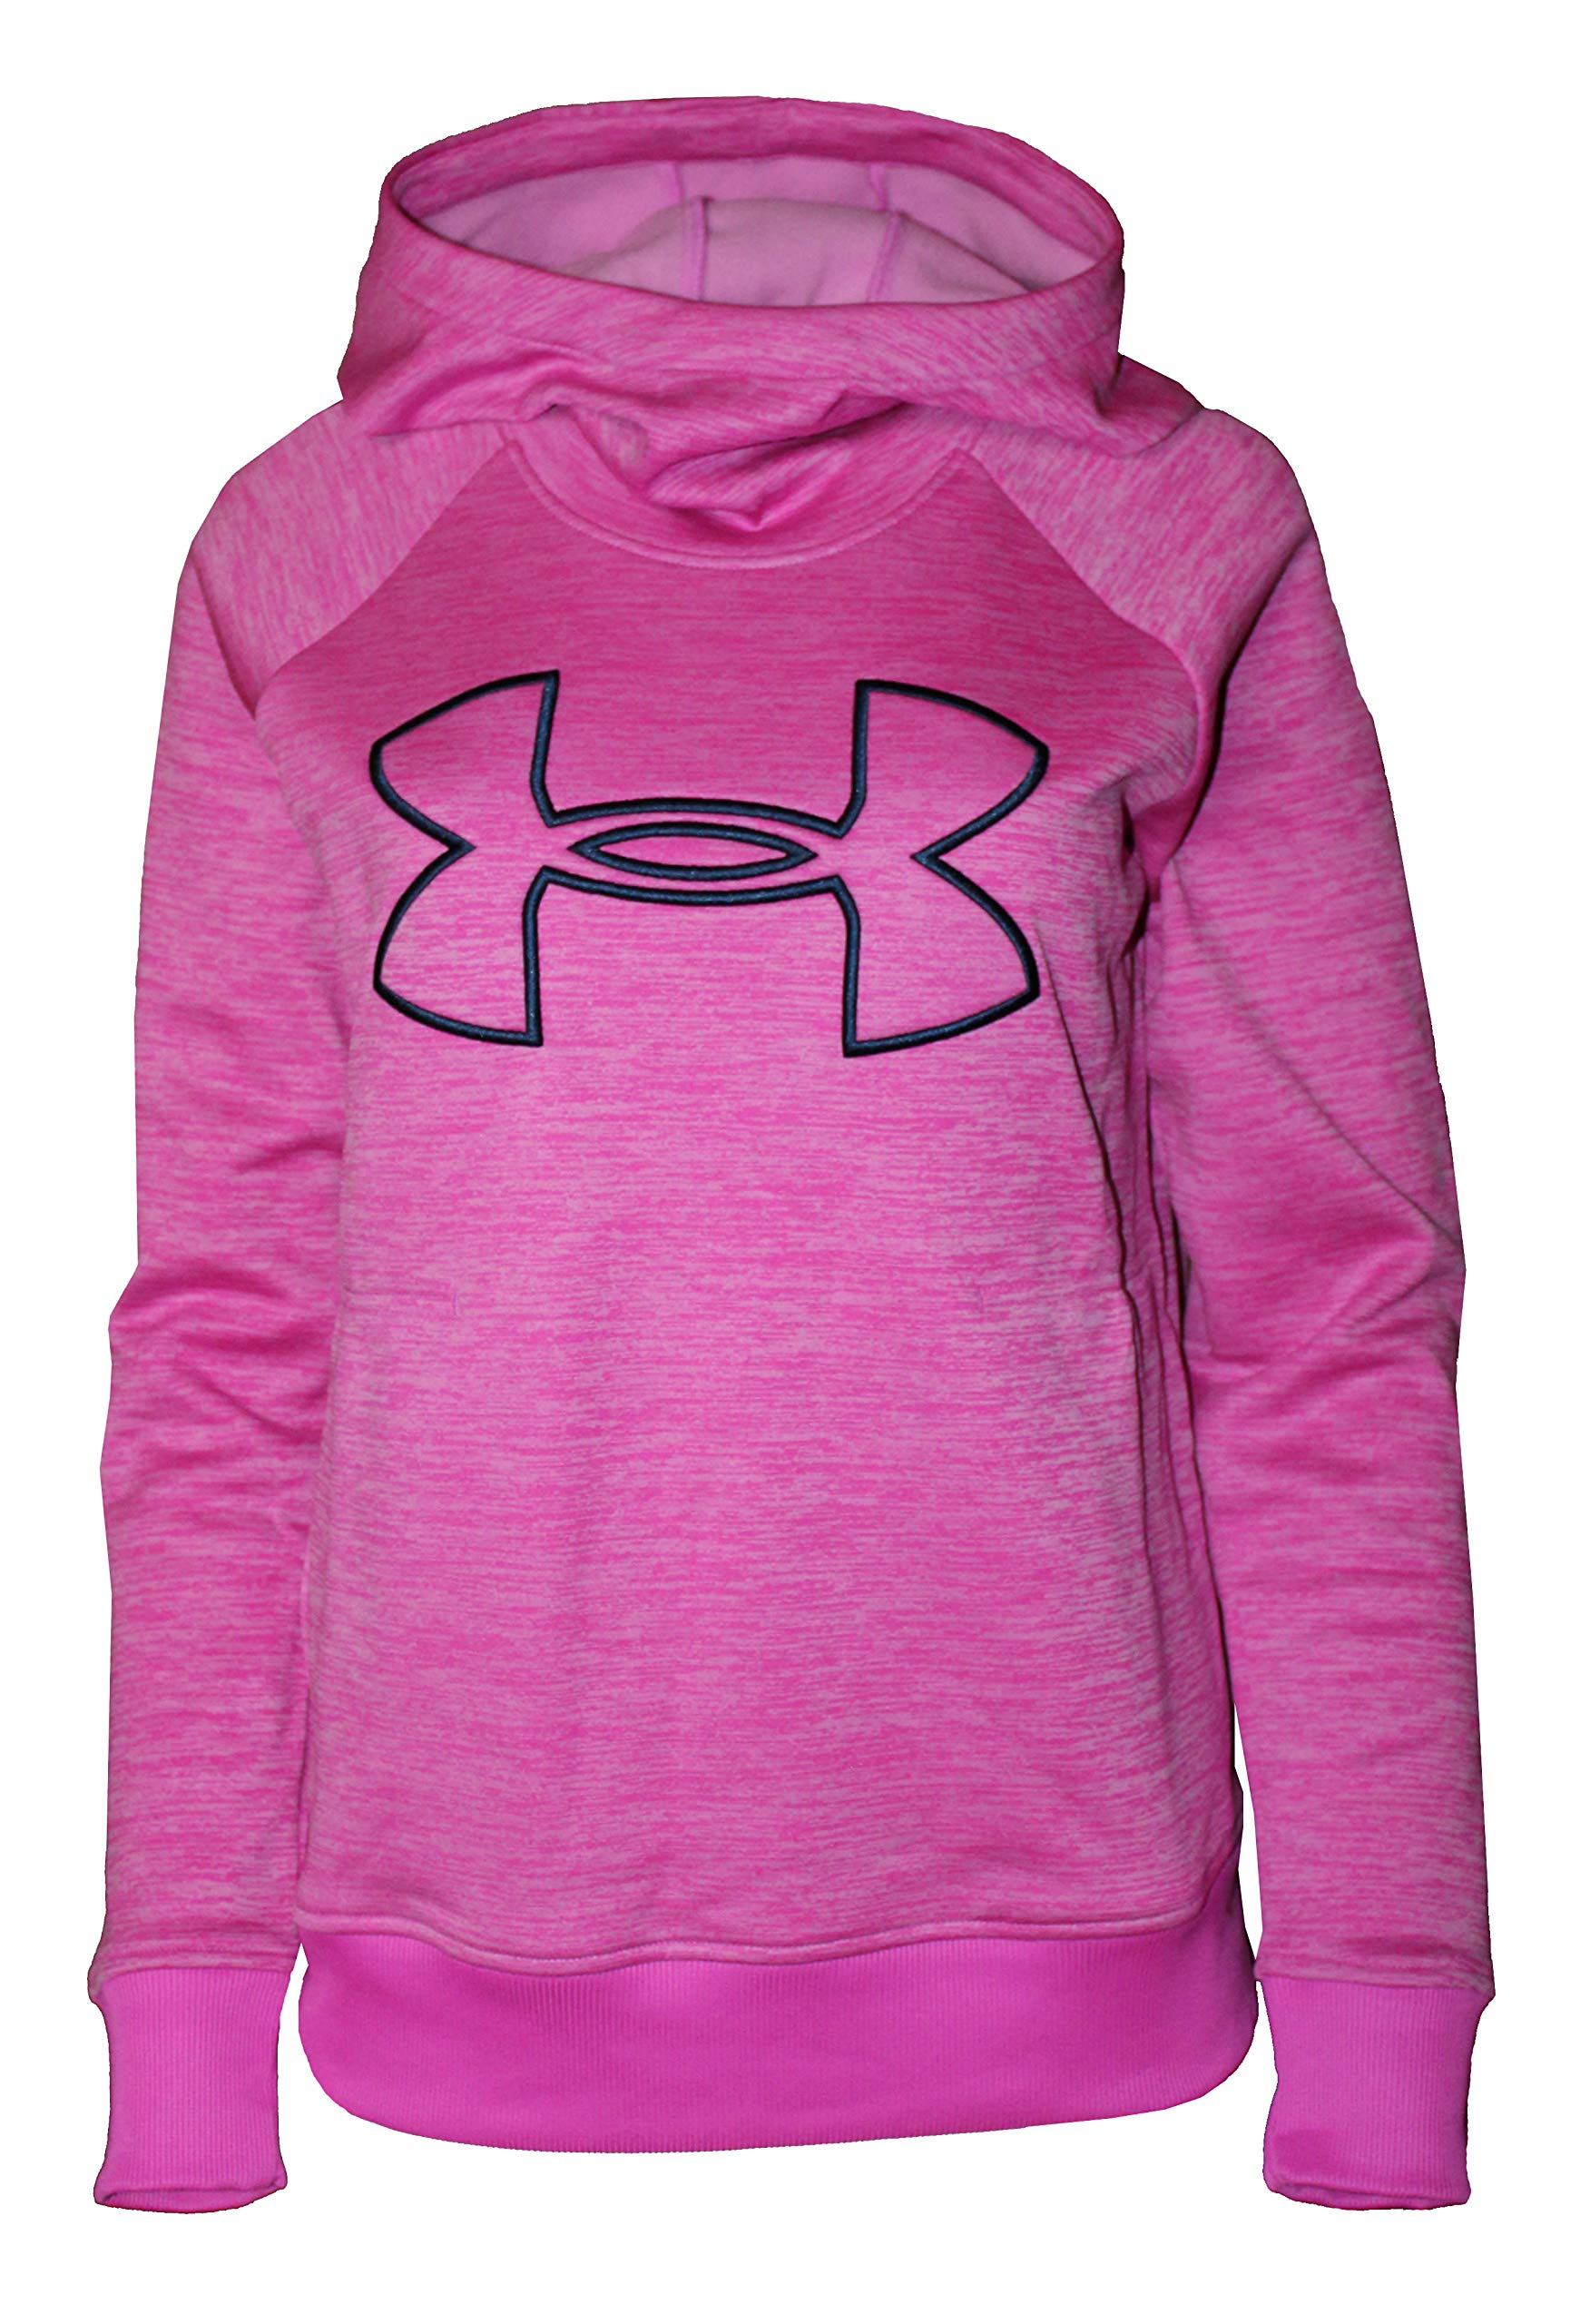 Under Armour Women's Hoodie Active Big Logo Pullover 1318396 (Pink Heather, S) by Under Armour